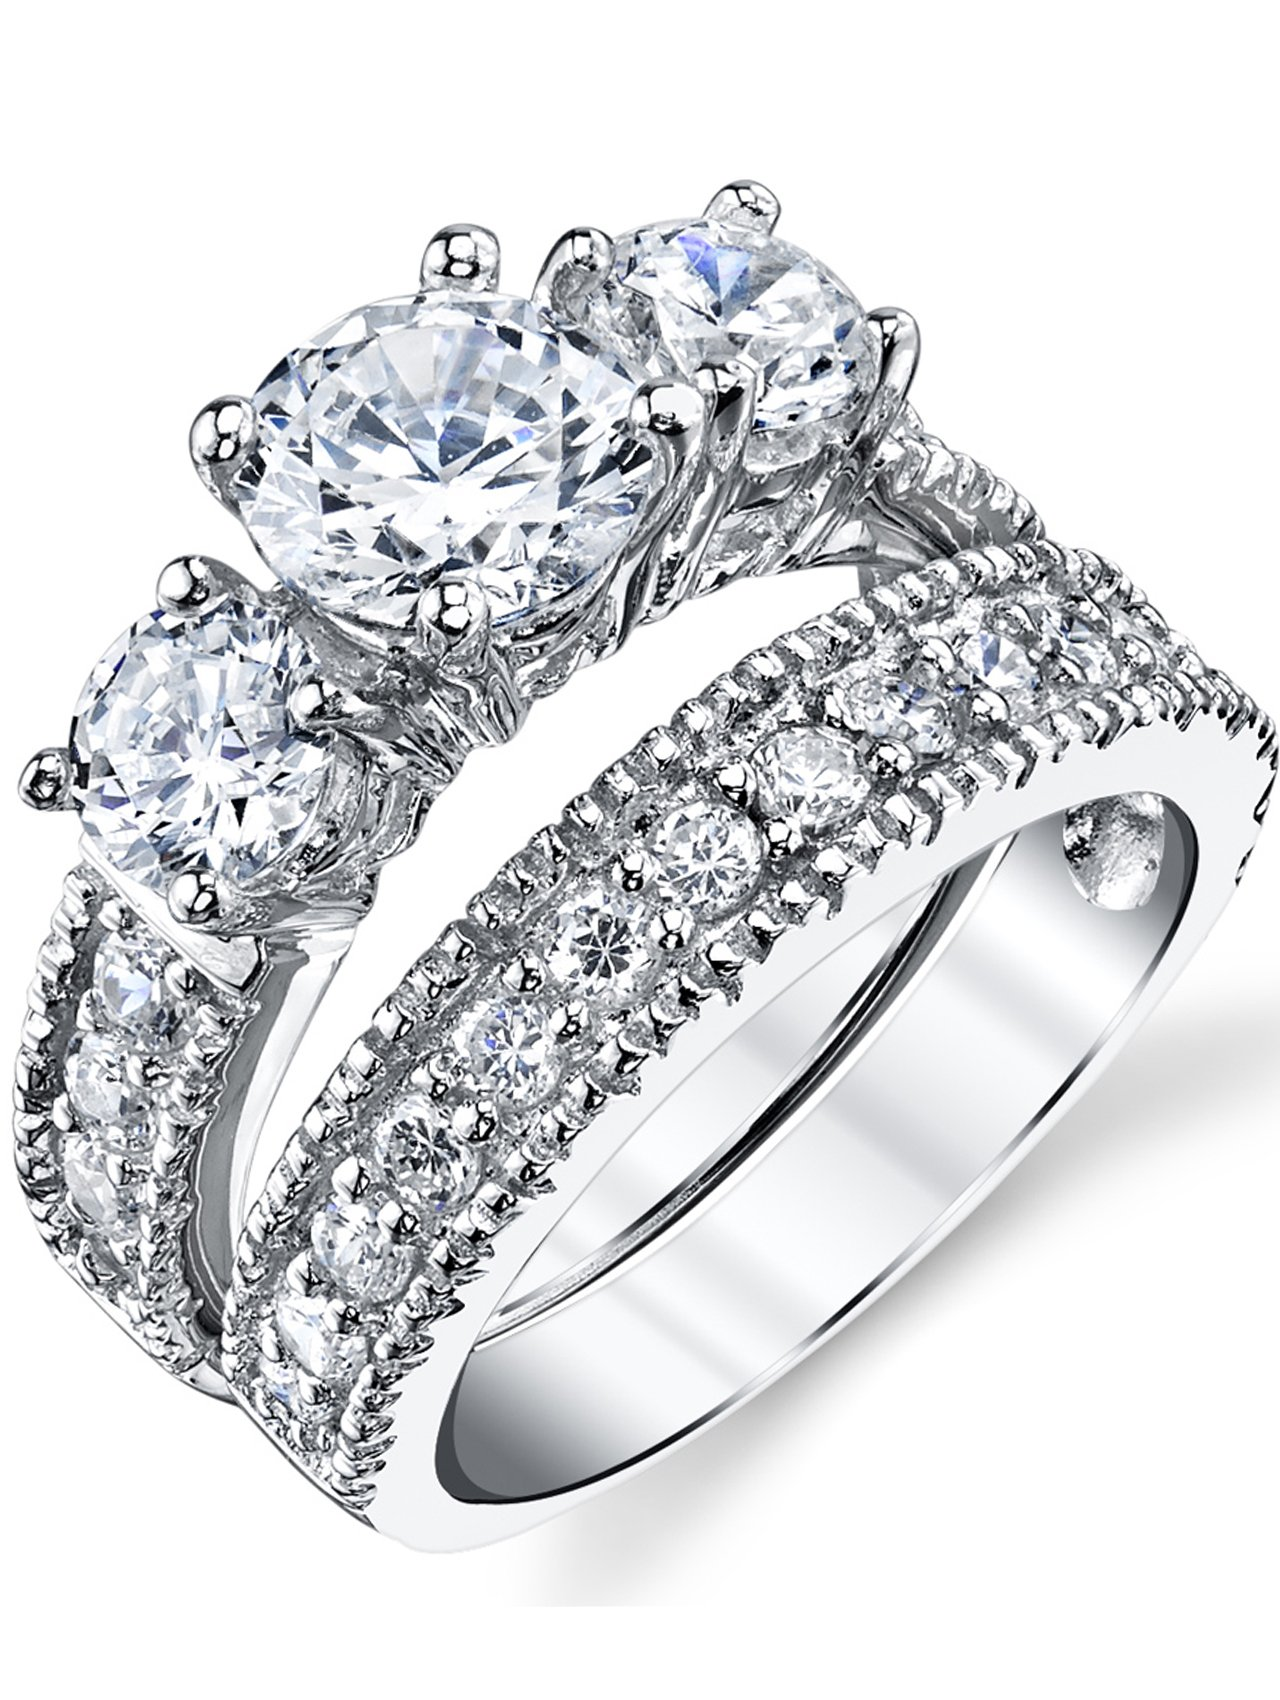 Sterling Silver Past Present Future Bridal Set Engagement Wedding Ring Band W/Cubic Zirconia CZ 9